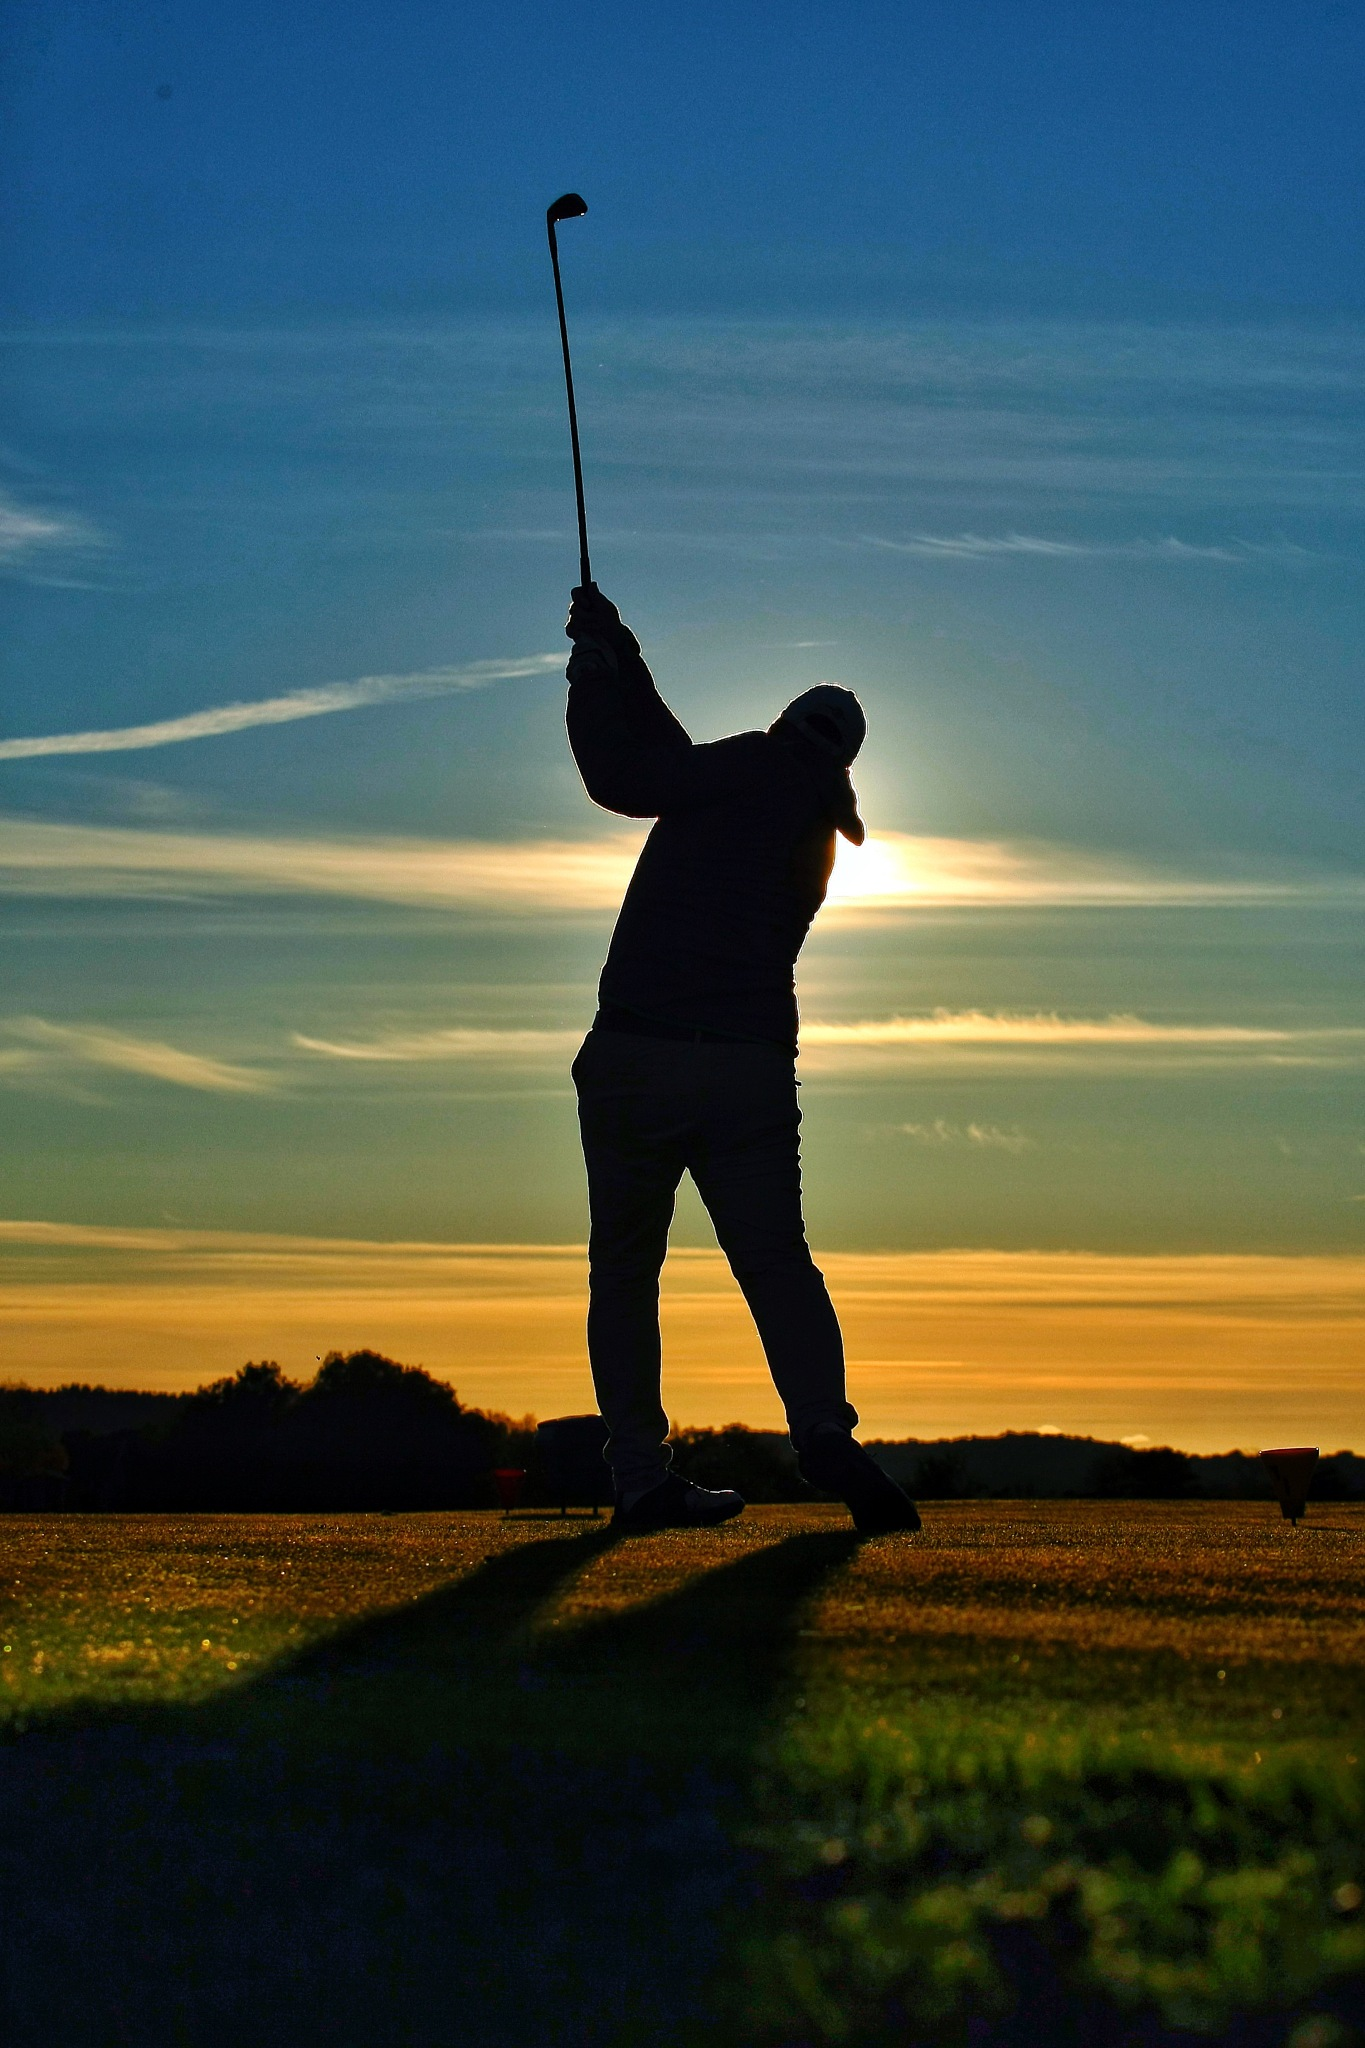 Sunset golf by Anders